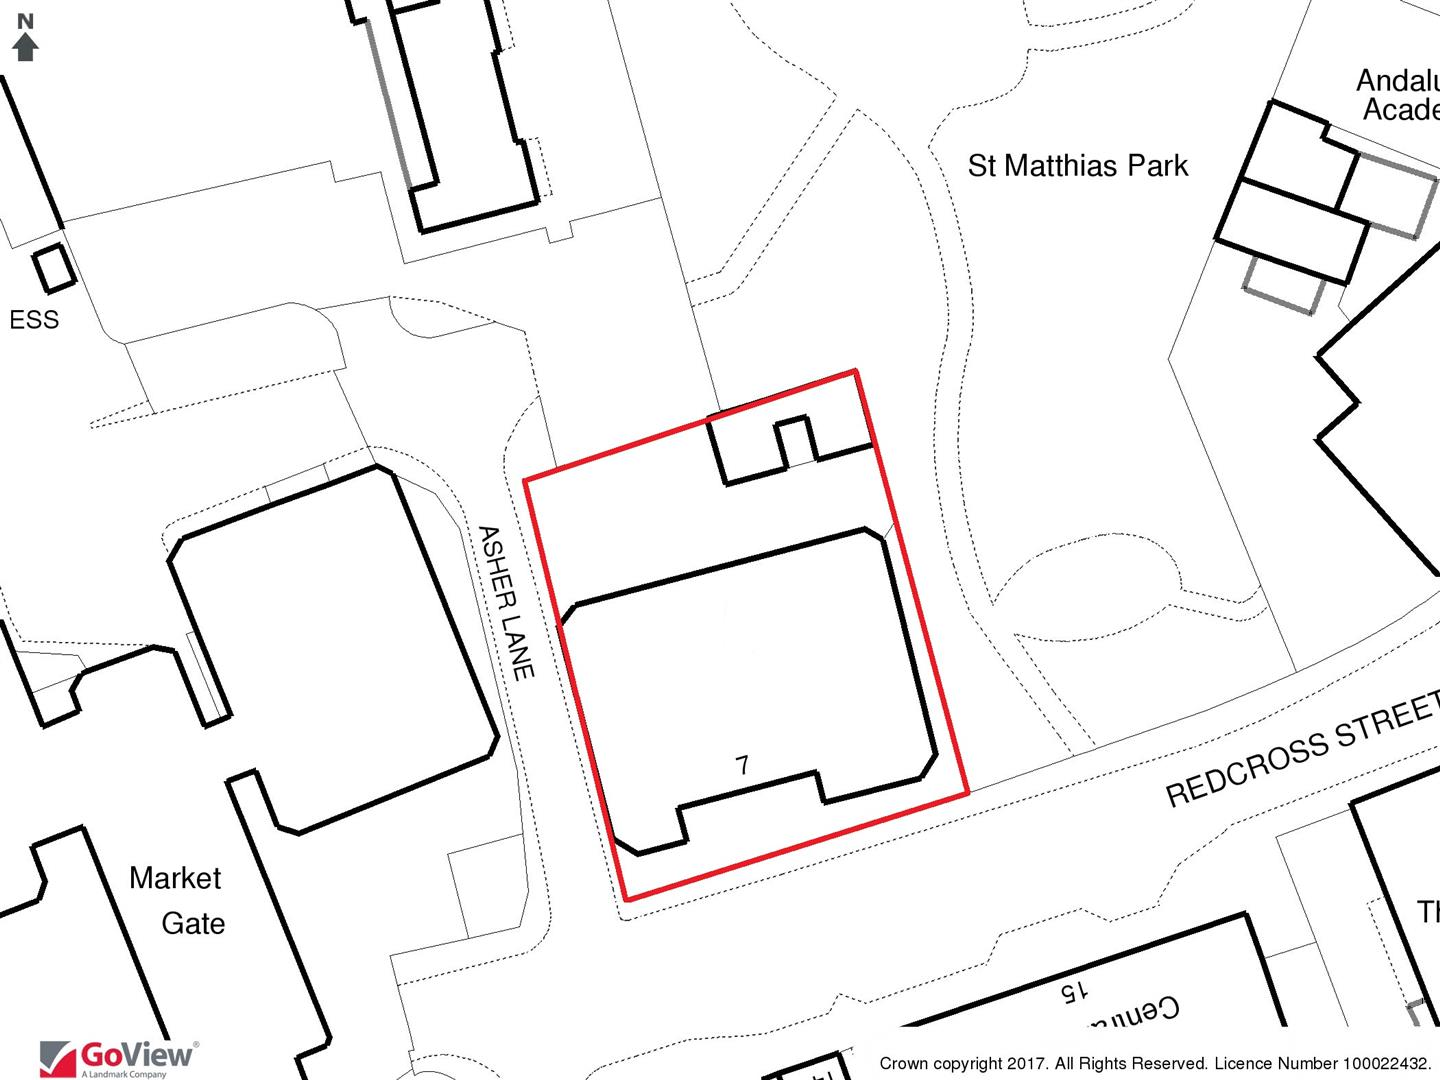 Images for DEVELOPMENT OPPORTUNITY - CITY CENTRE EAID:hollismoapi BID:11